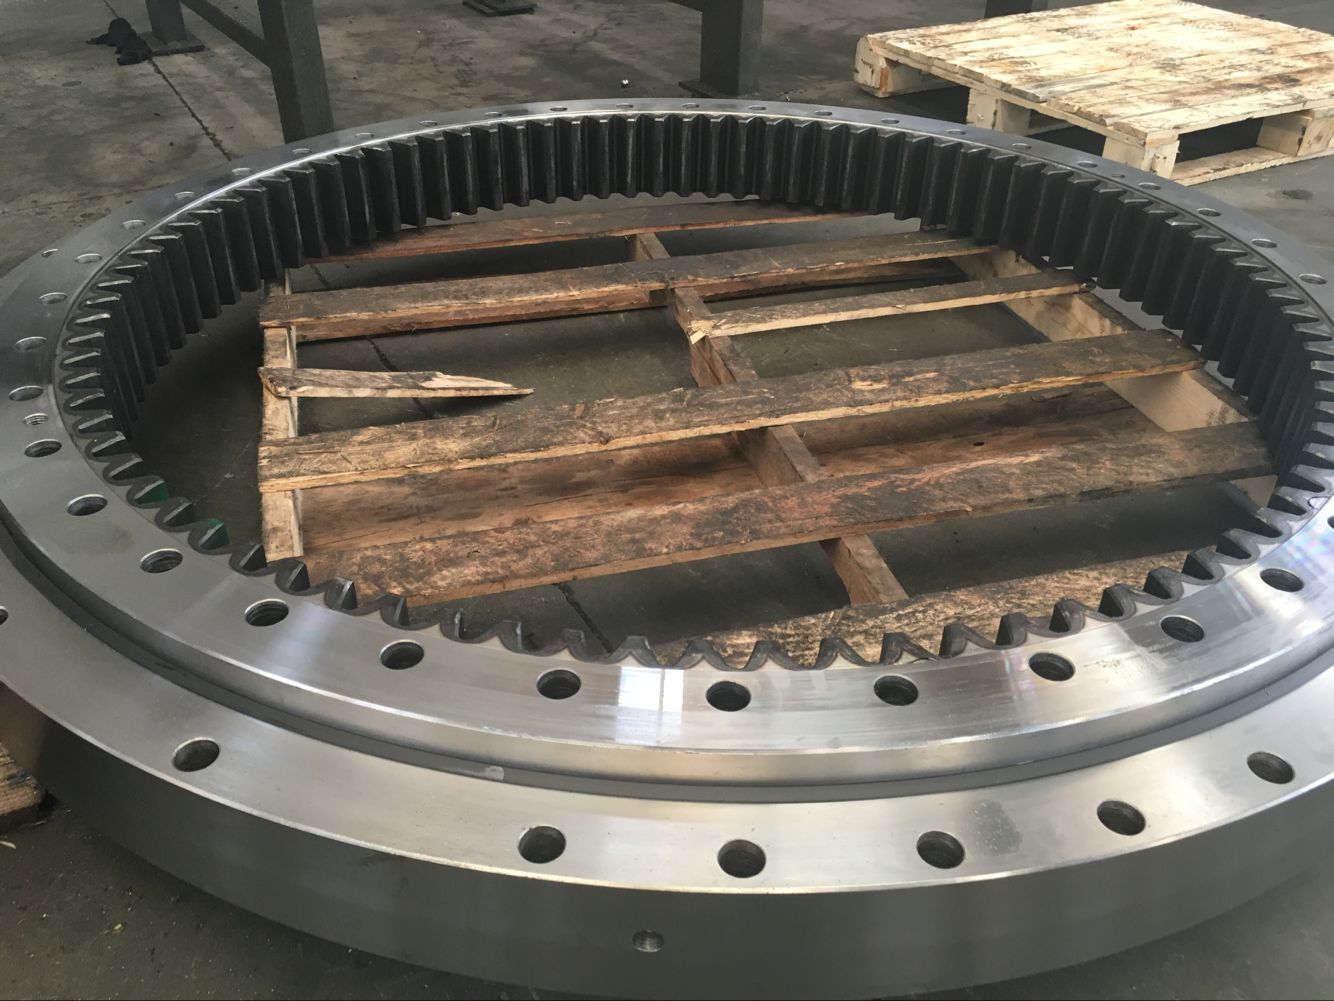 CX290B slewing bearing, Case290B slewing ring package, Case excavator swing gear